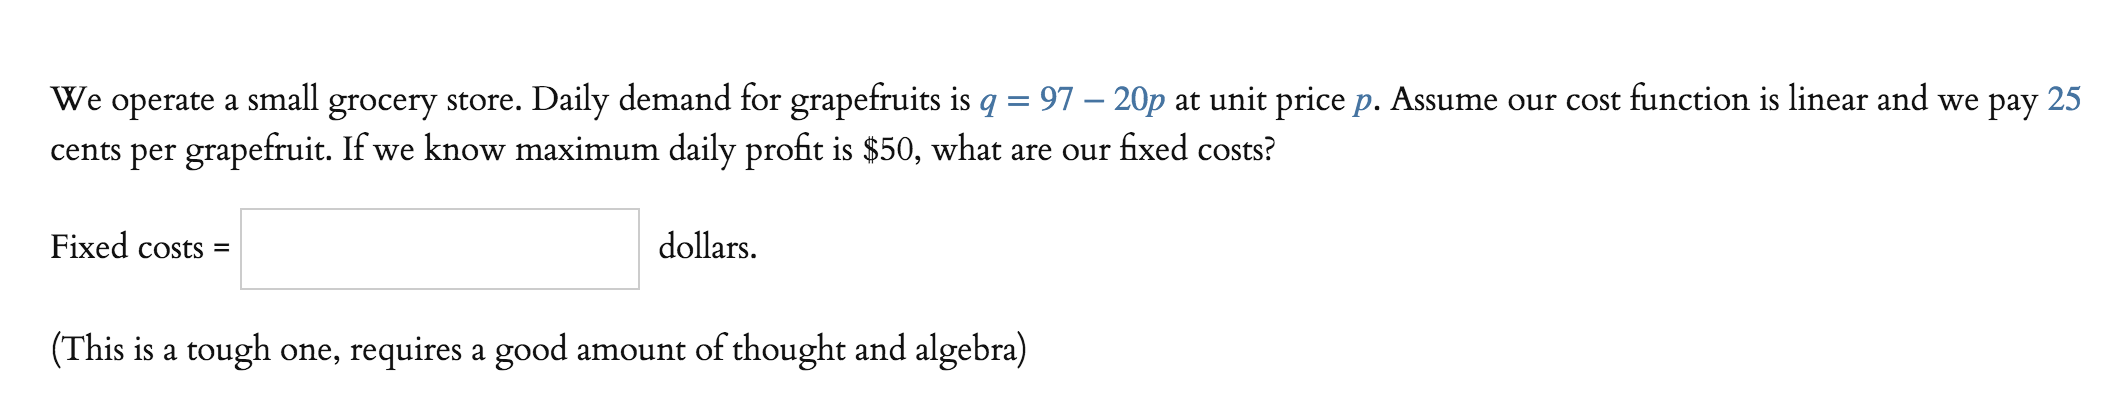 We operate a small grocery store. Daily demand for grapefruit is q-97-20p at unit price p. Assume our cost function is linear and we pay 25 cents per grapefruit. If we know maximum daily profit is S50, what are our fixed costs? Fixed costs This is a tough one, requires a good amount of thought and algebra) dollars